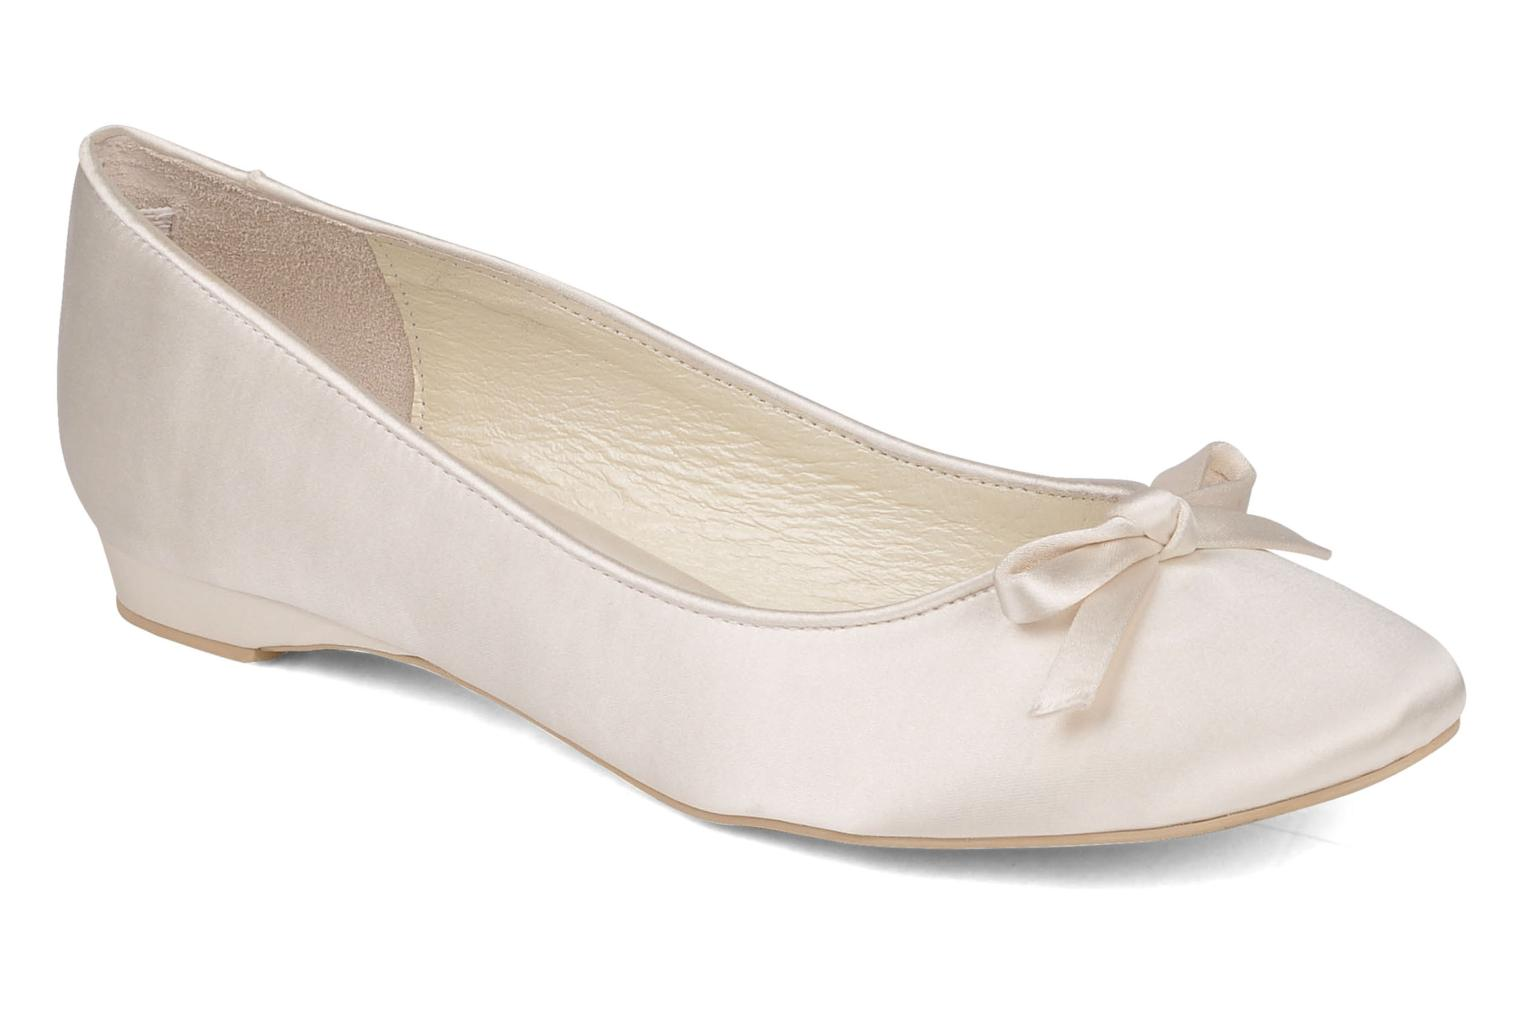 Womens Alicia Bridal Menbur